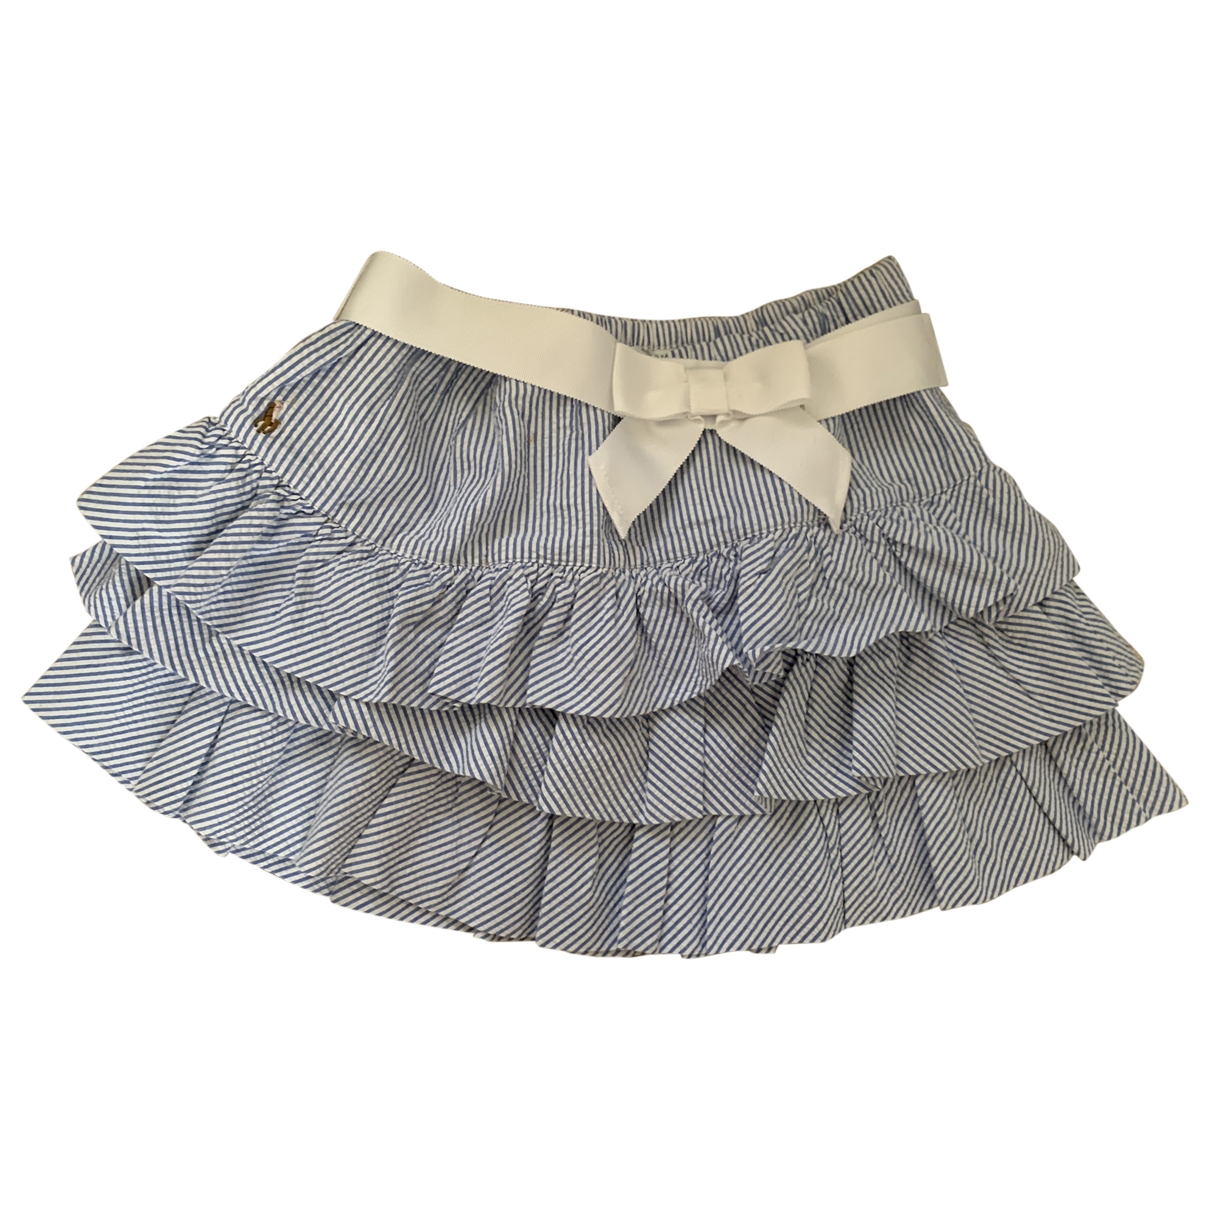 Polo Ralph Lauren \N Blue Cotton skirt for Kids 16 years - M FR